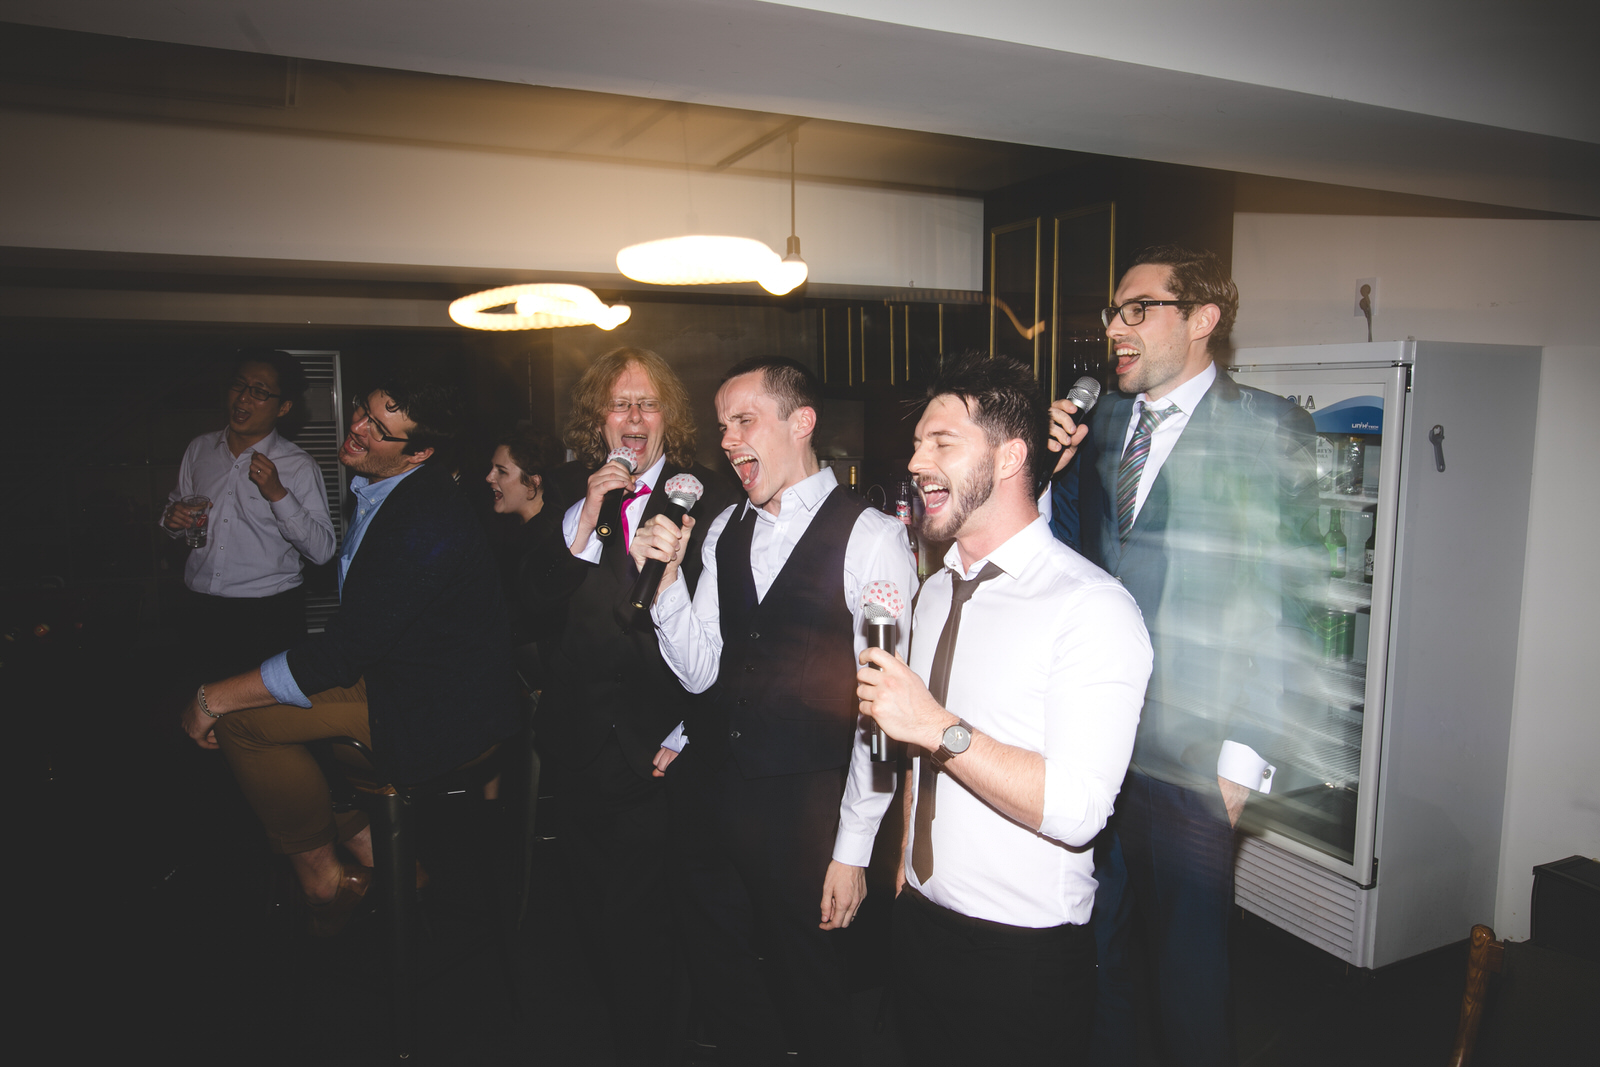 after hours karaoke party at Seoul wedding in south Korea